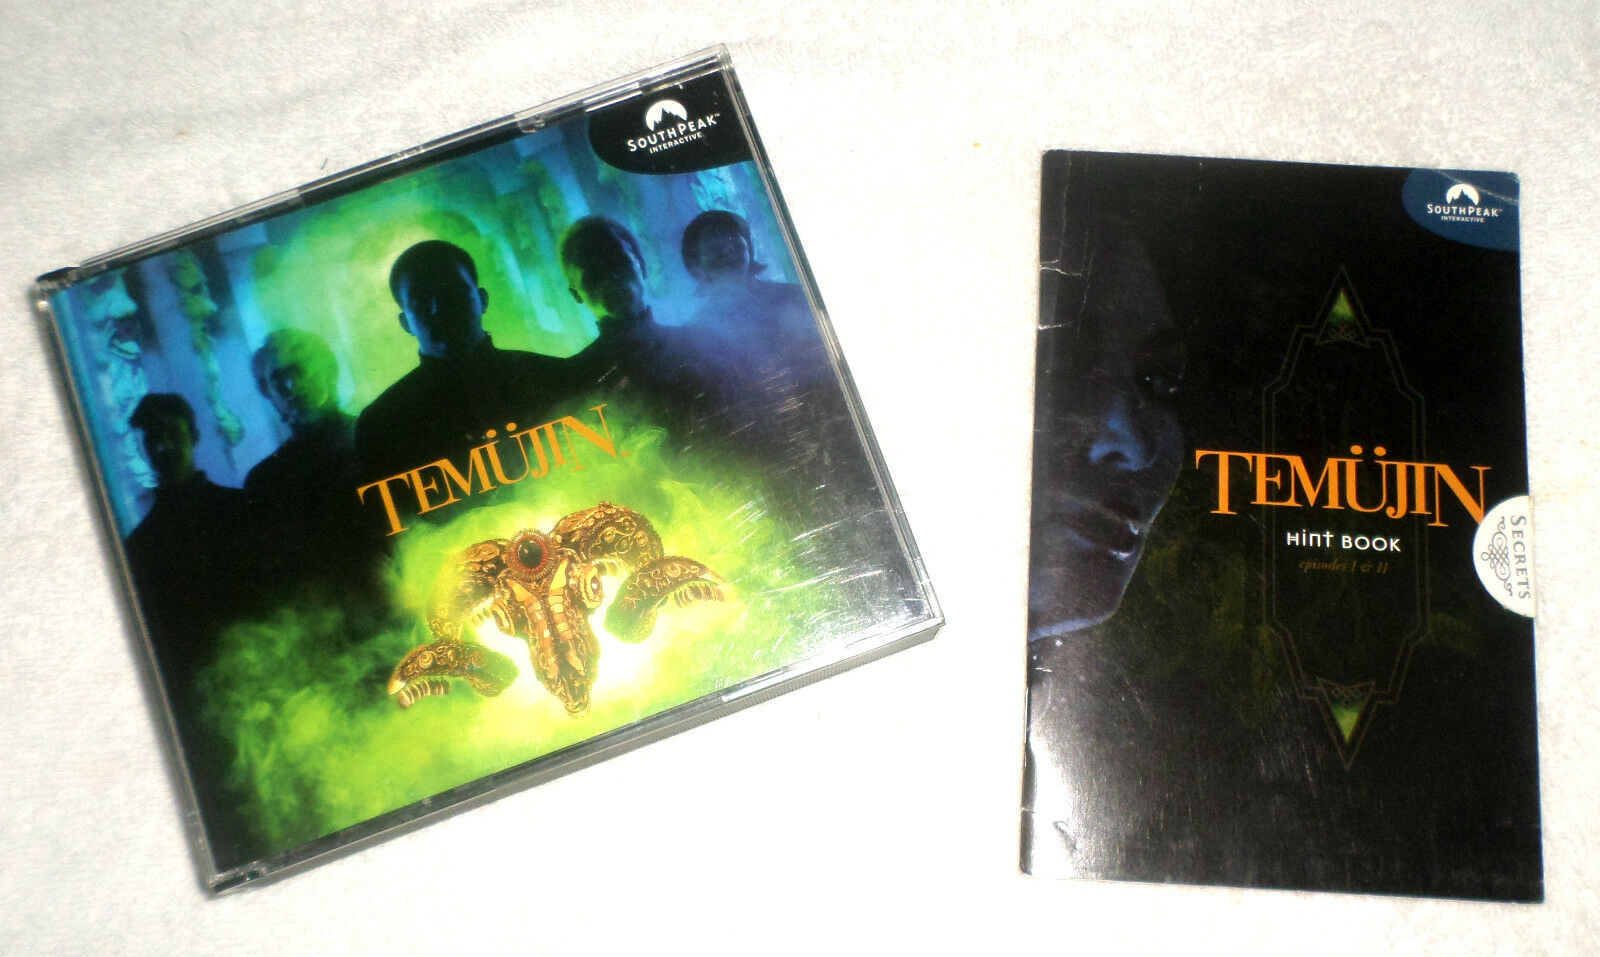 TEMUJIN  6 pristine CDs, artwork JC, 16-page Player's Guide, 20-pg Hint Book